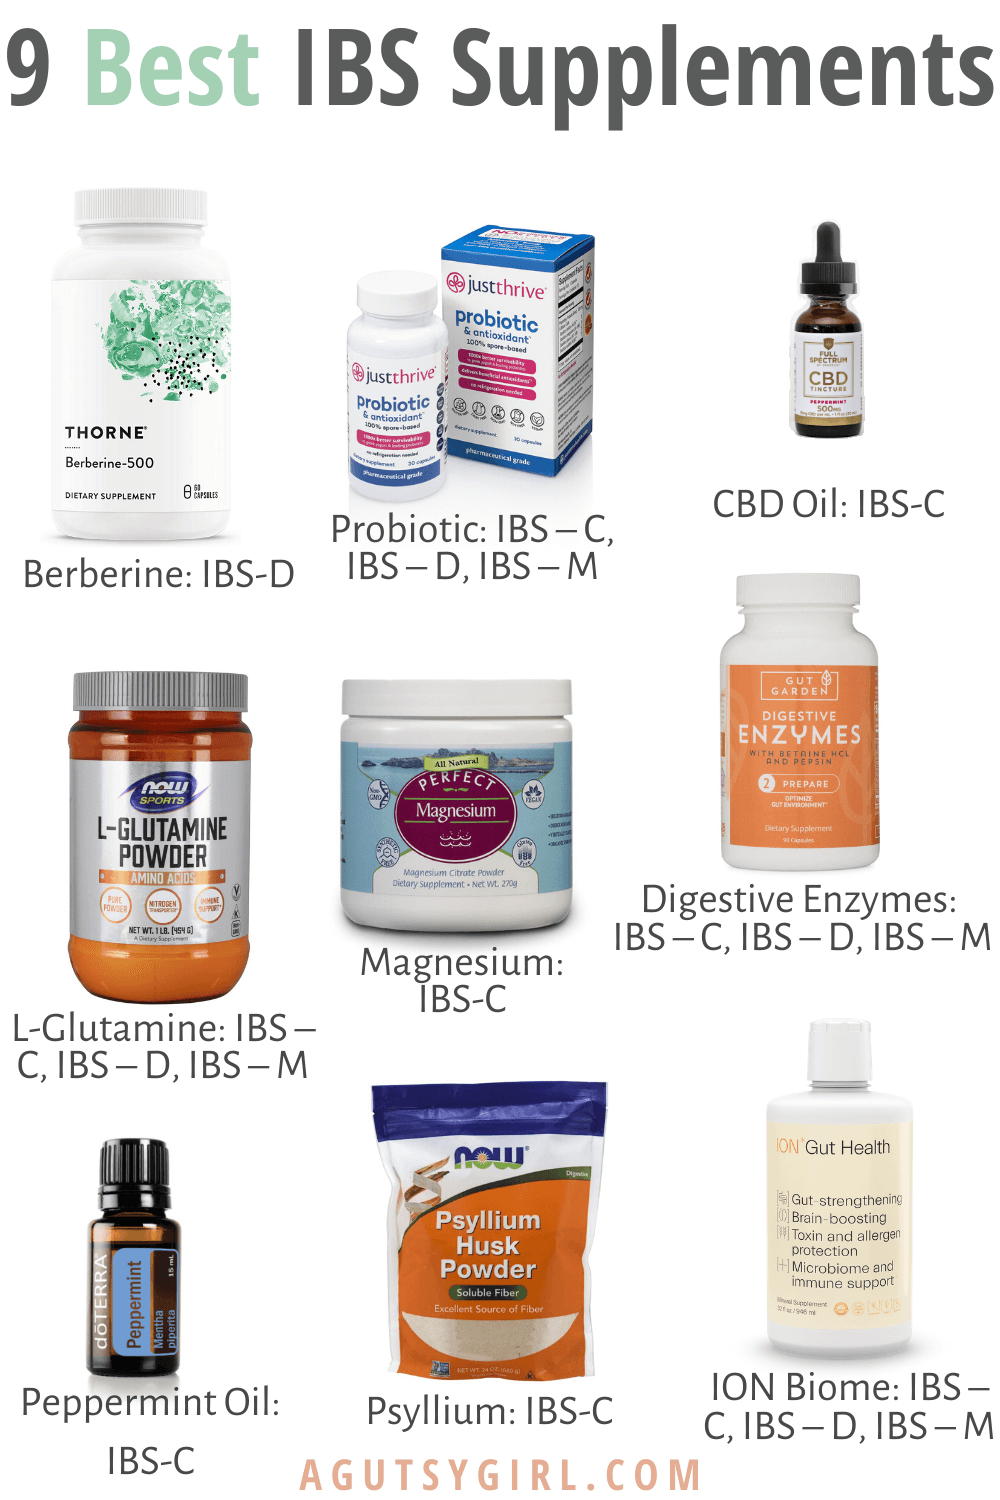 9 Best IBS Supplements infographic agutsygirl.com #ibs #guthealth #supplements